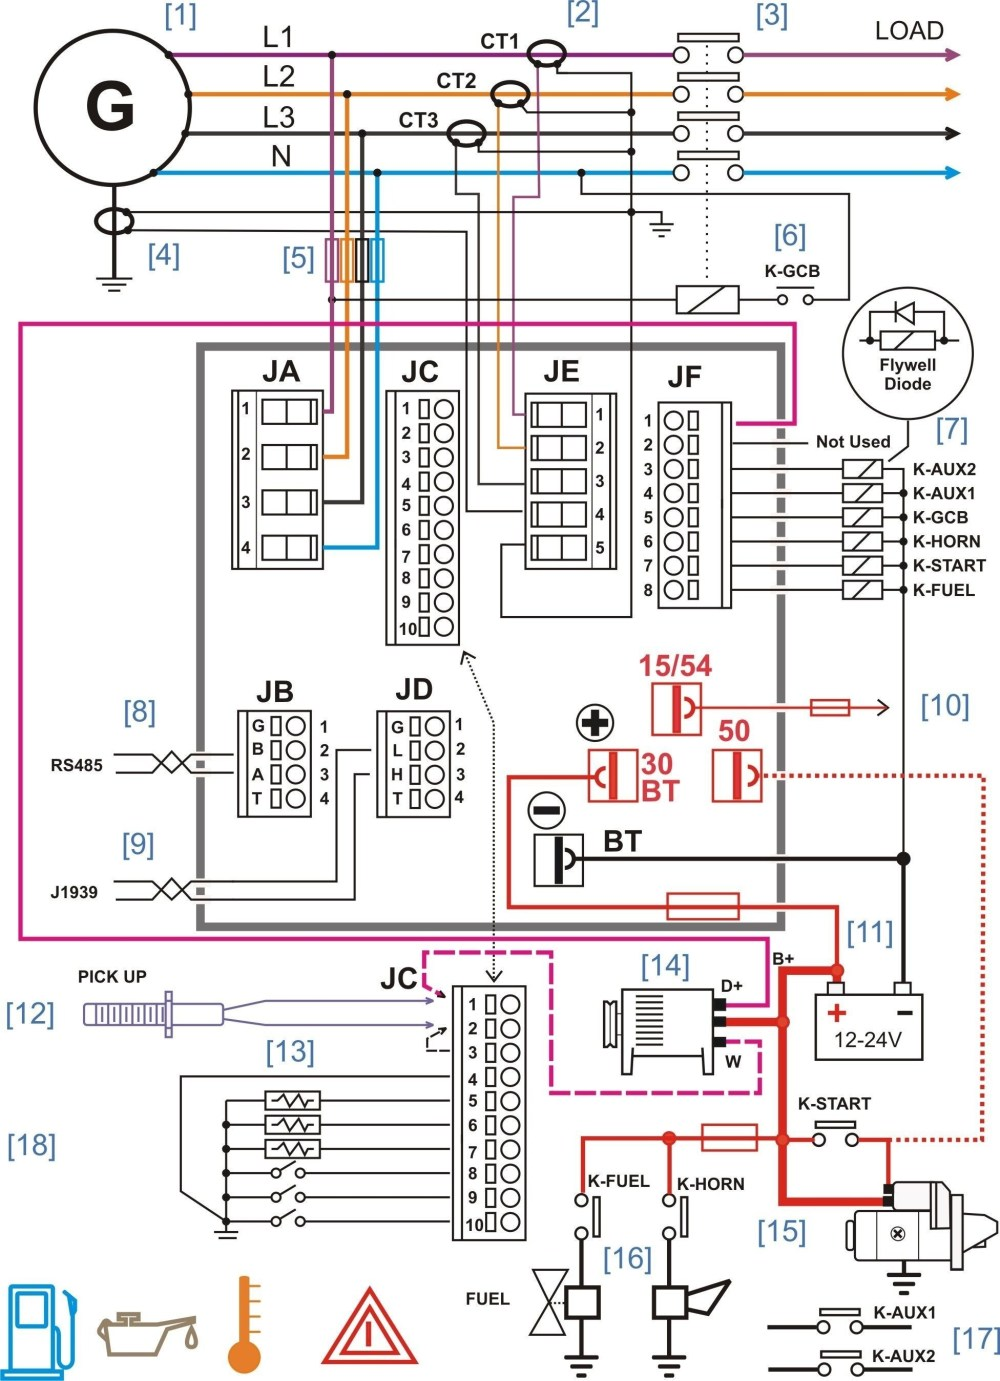 medium resolution of home wiring diagram tool wiring diagram view guitar wiring diagram maker wiring diagram name guitar wiring